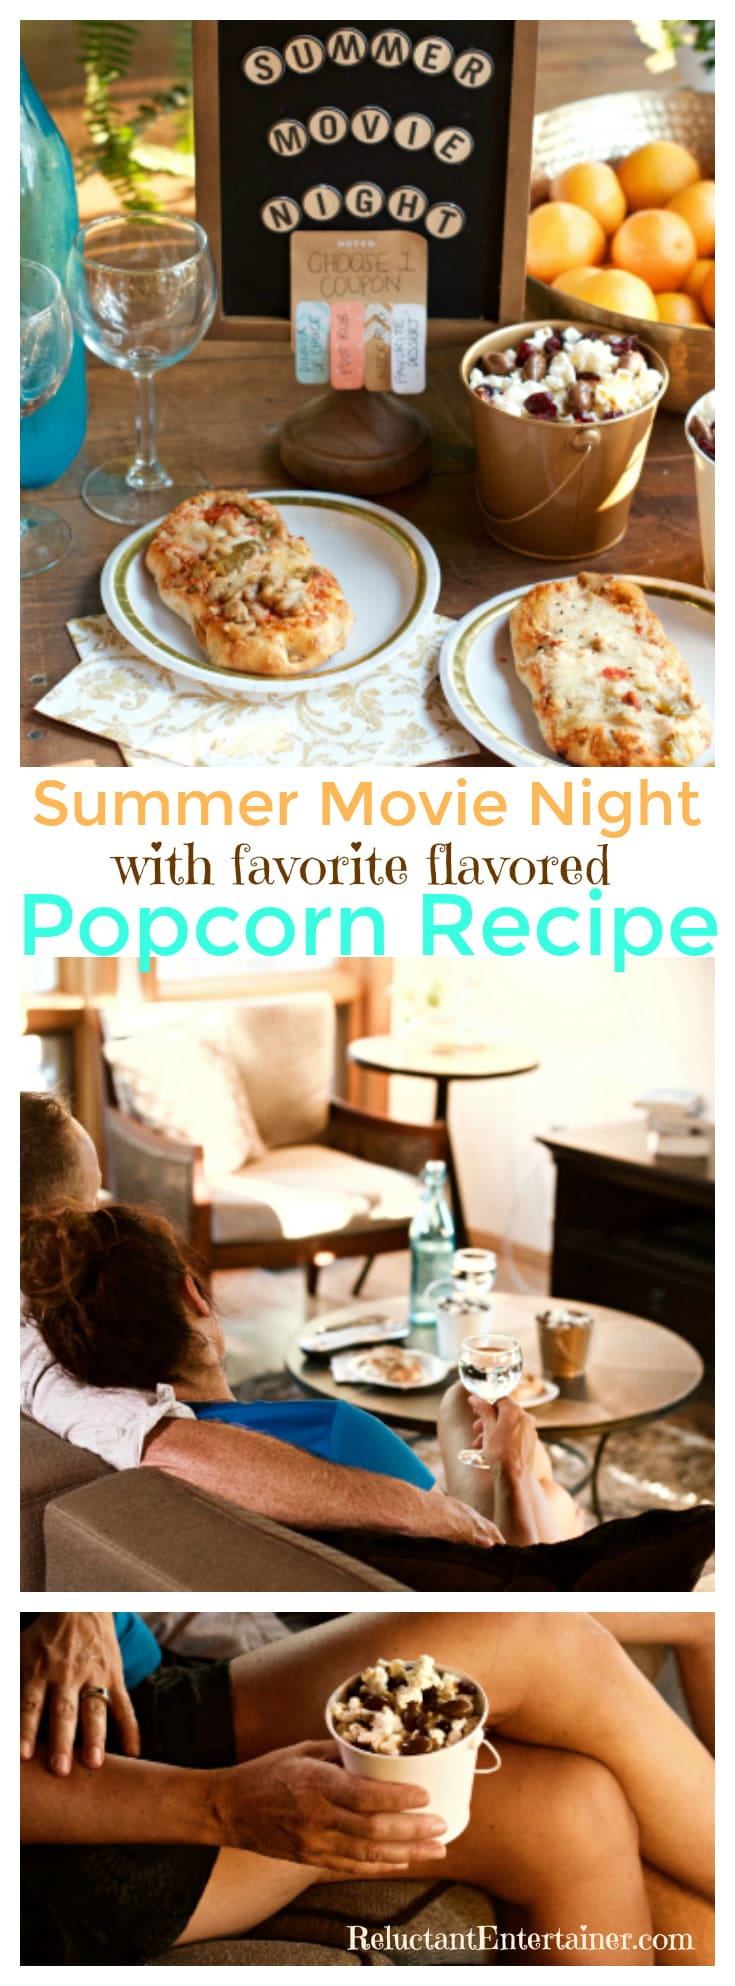 Create a lasting memory of fun and relaxation for a Summer Movie Night, and your favorite flavored popcorn   ReluctantEntertainer.com